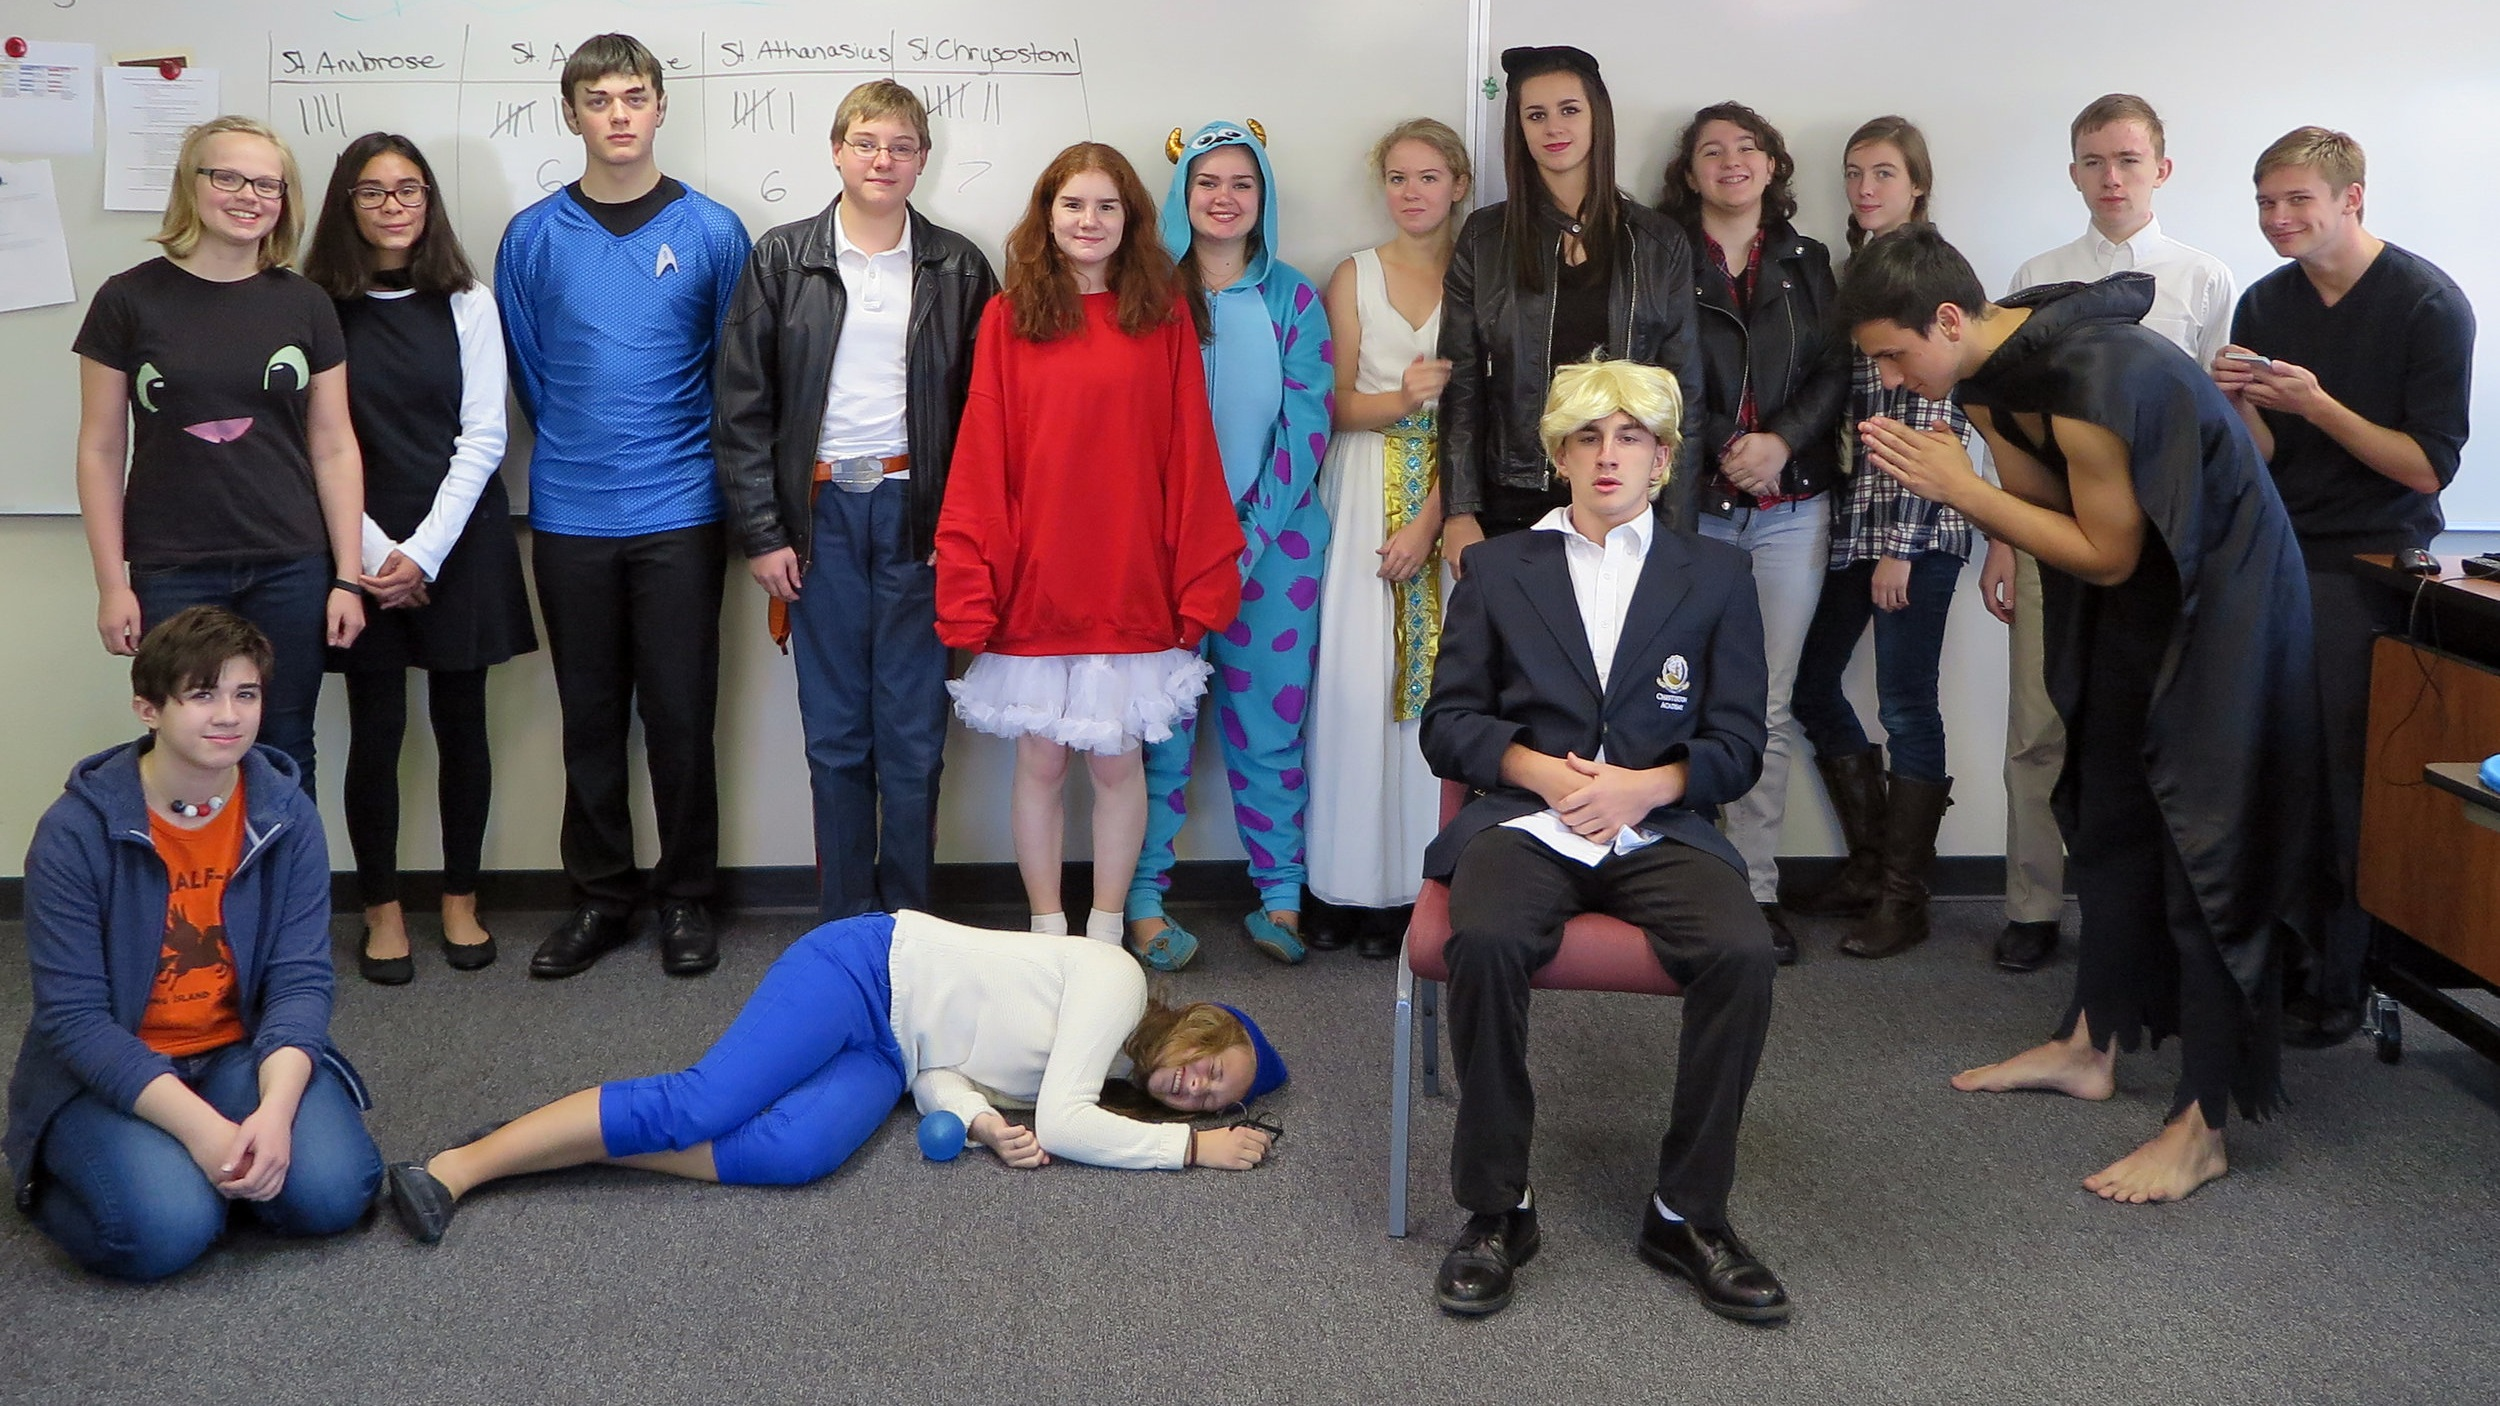 spirit week group costumes2.jpg